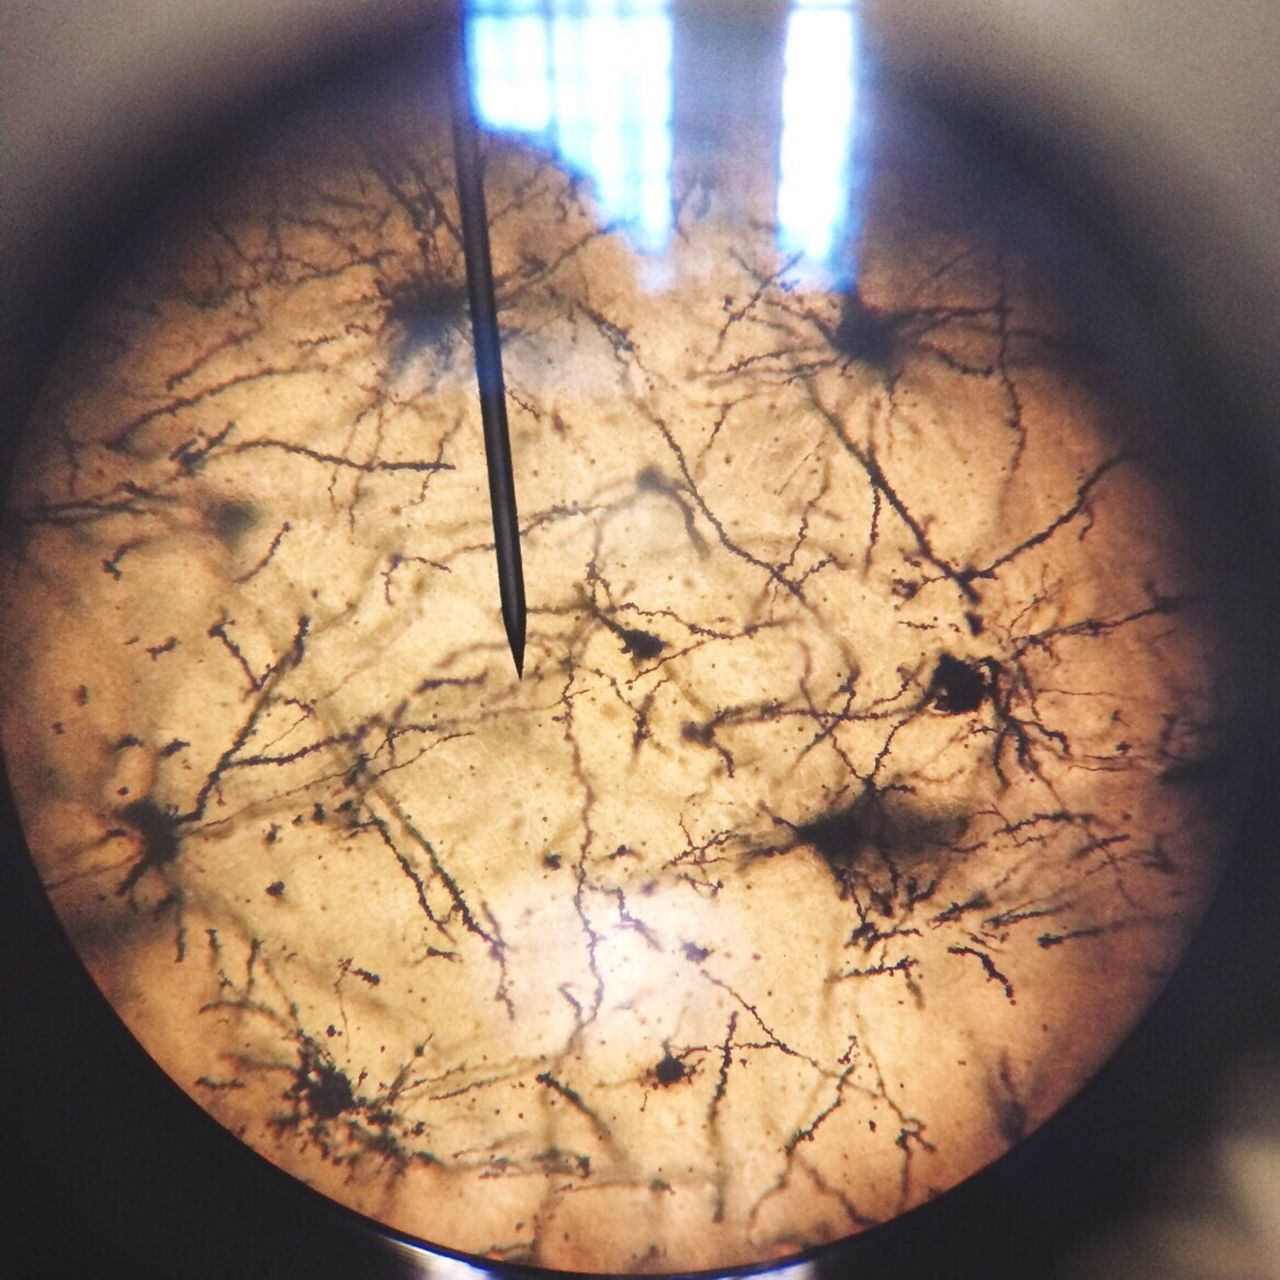 Neurons Neuroscience Microscope